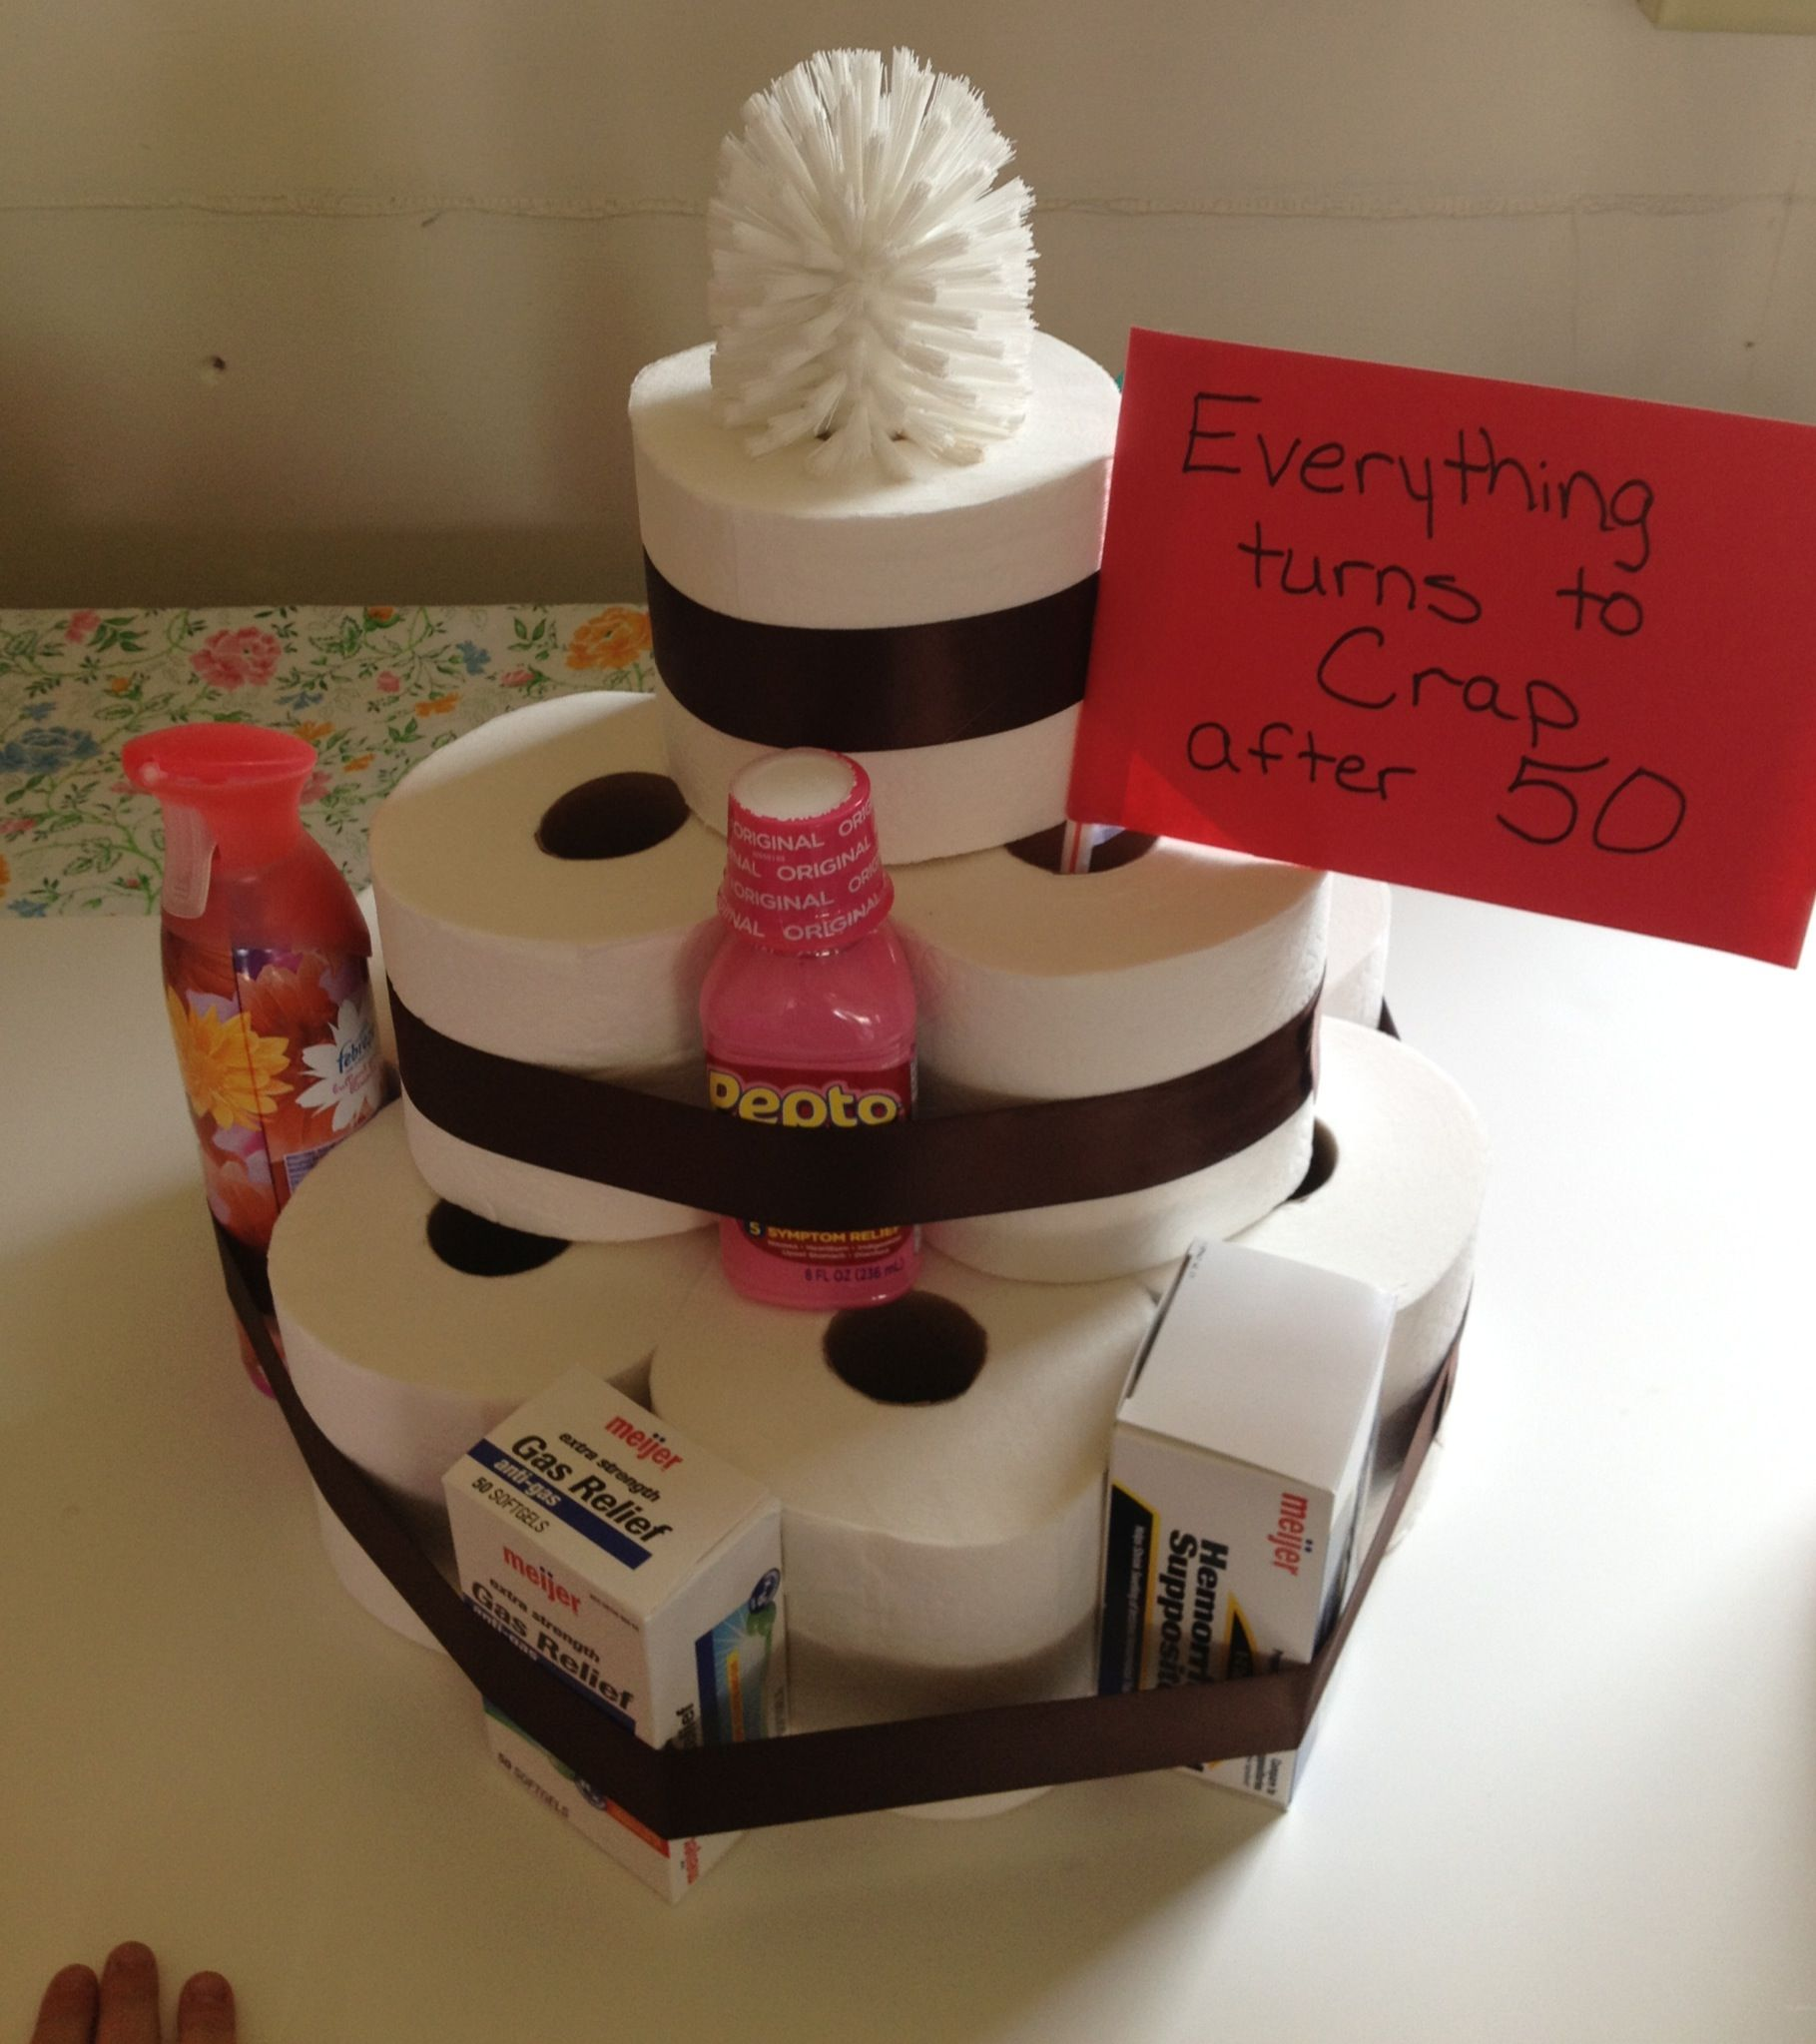 Toilet paper cake fun gag gift for anyone turning 50 for 50th birthday party decoration ideas diy